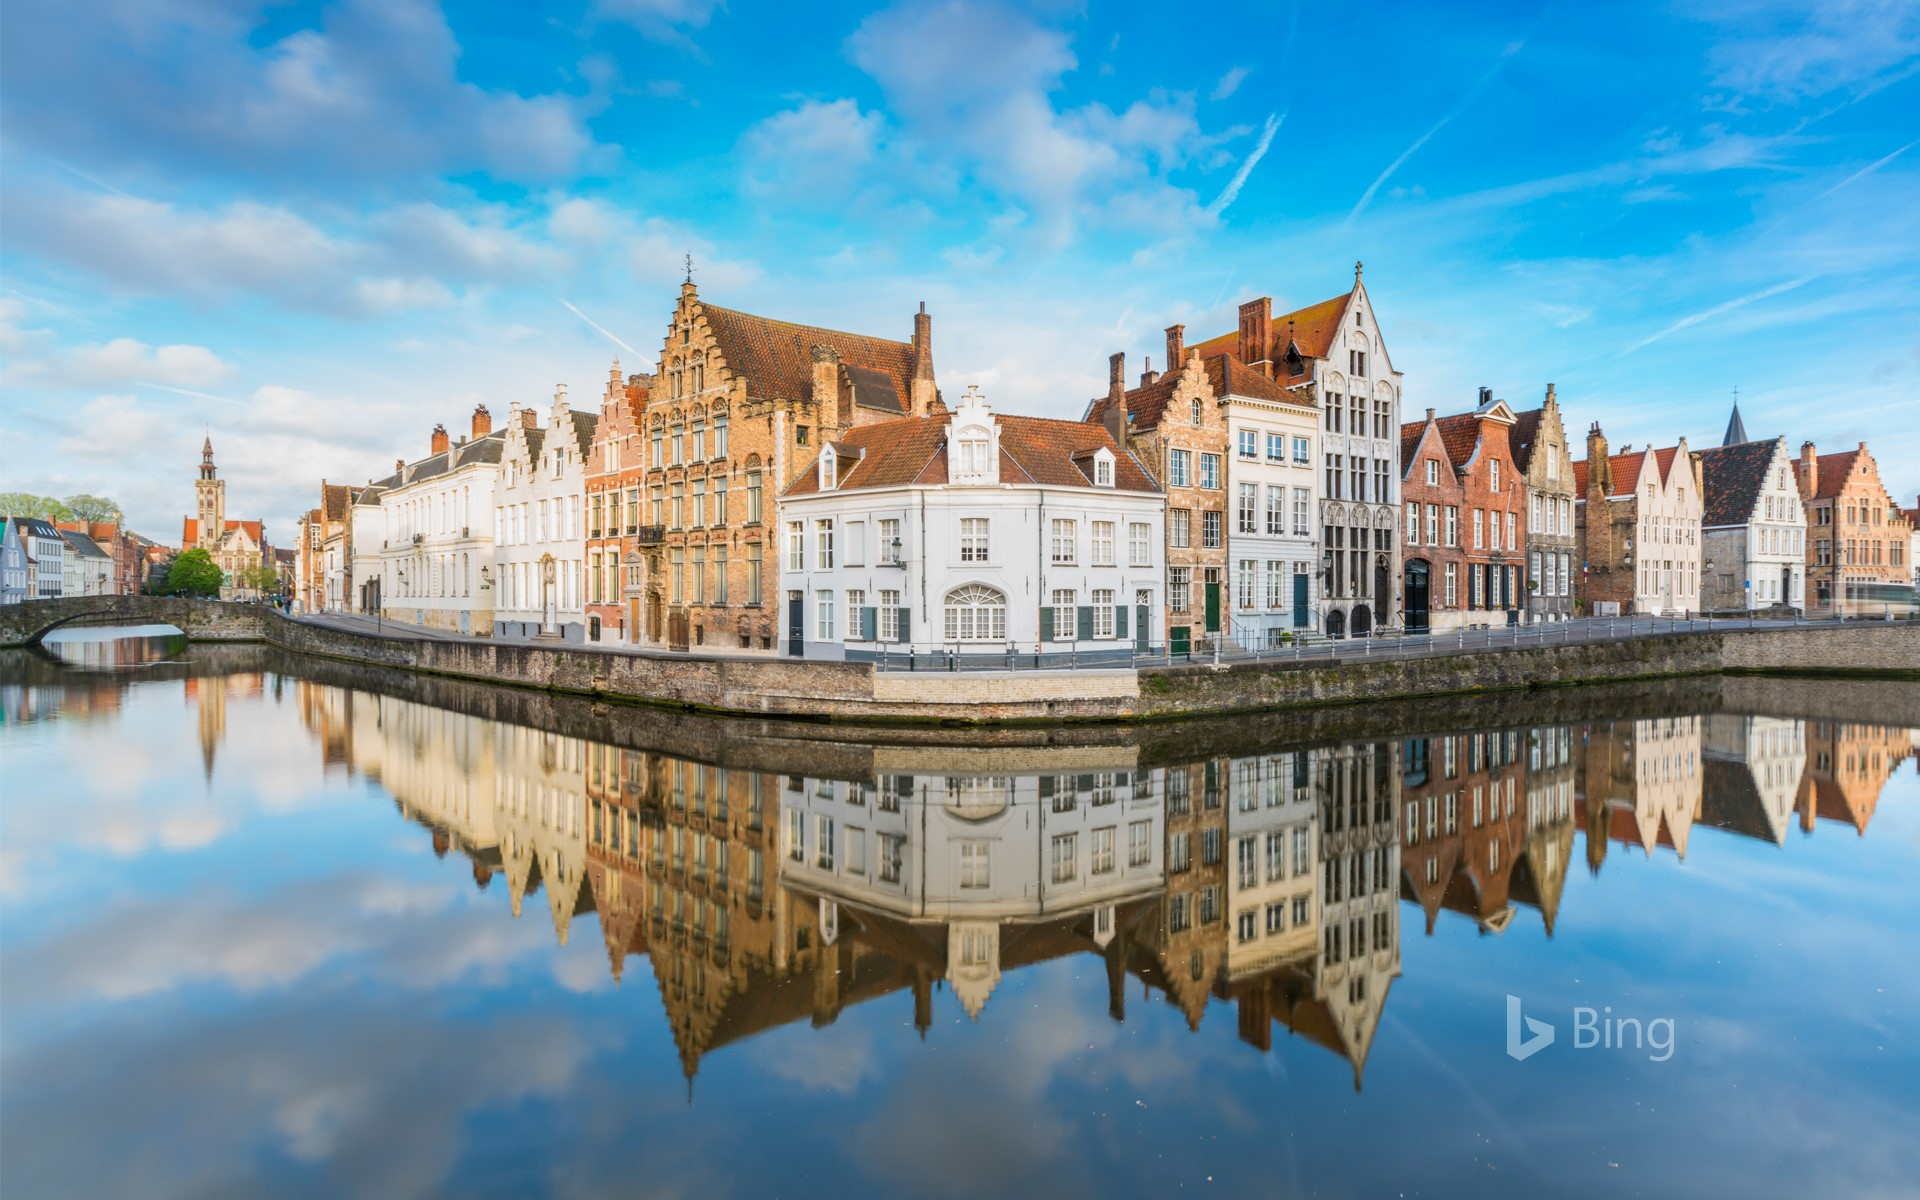 Buildings reflected on the canals of Bruges, Belgium